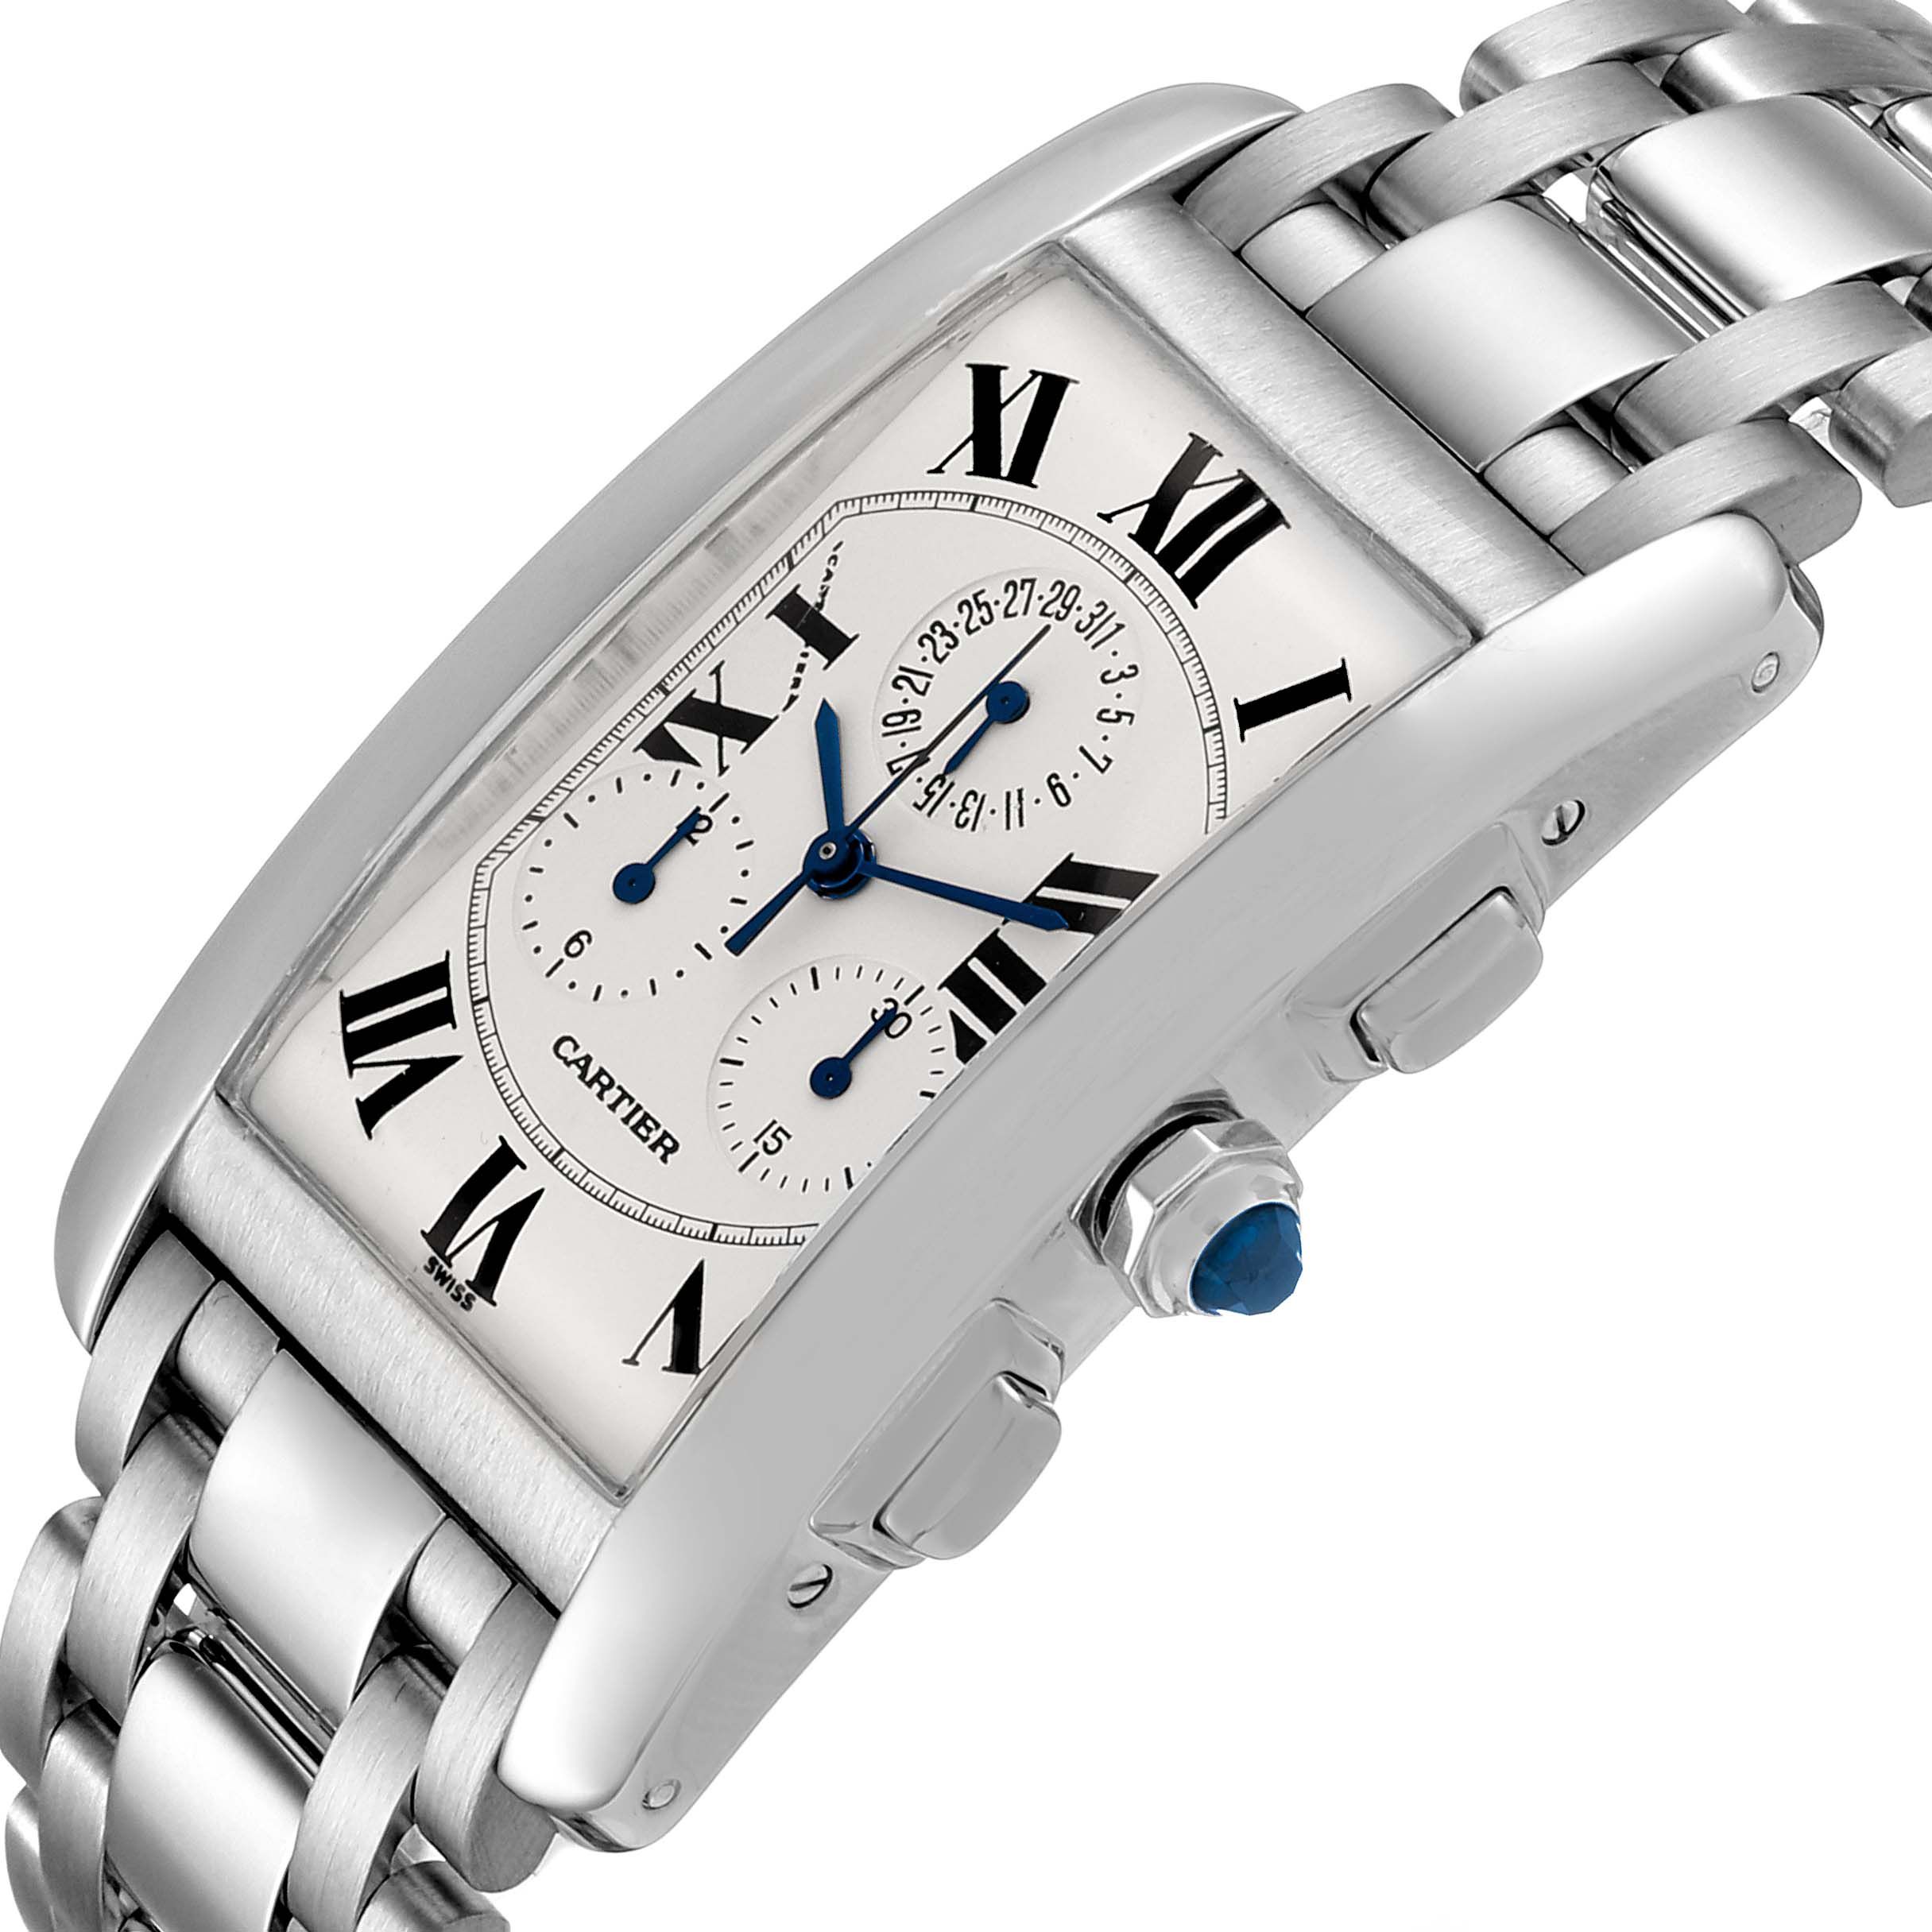 Cartier Tank Americaine Chronograph White Gold Mens Watch W26033L1 SwissWatchExpo